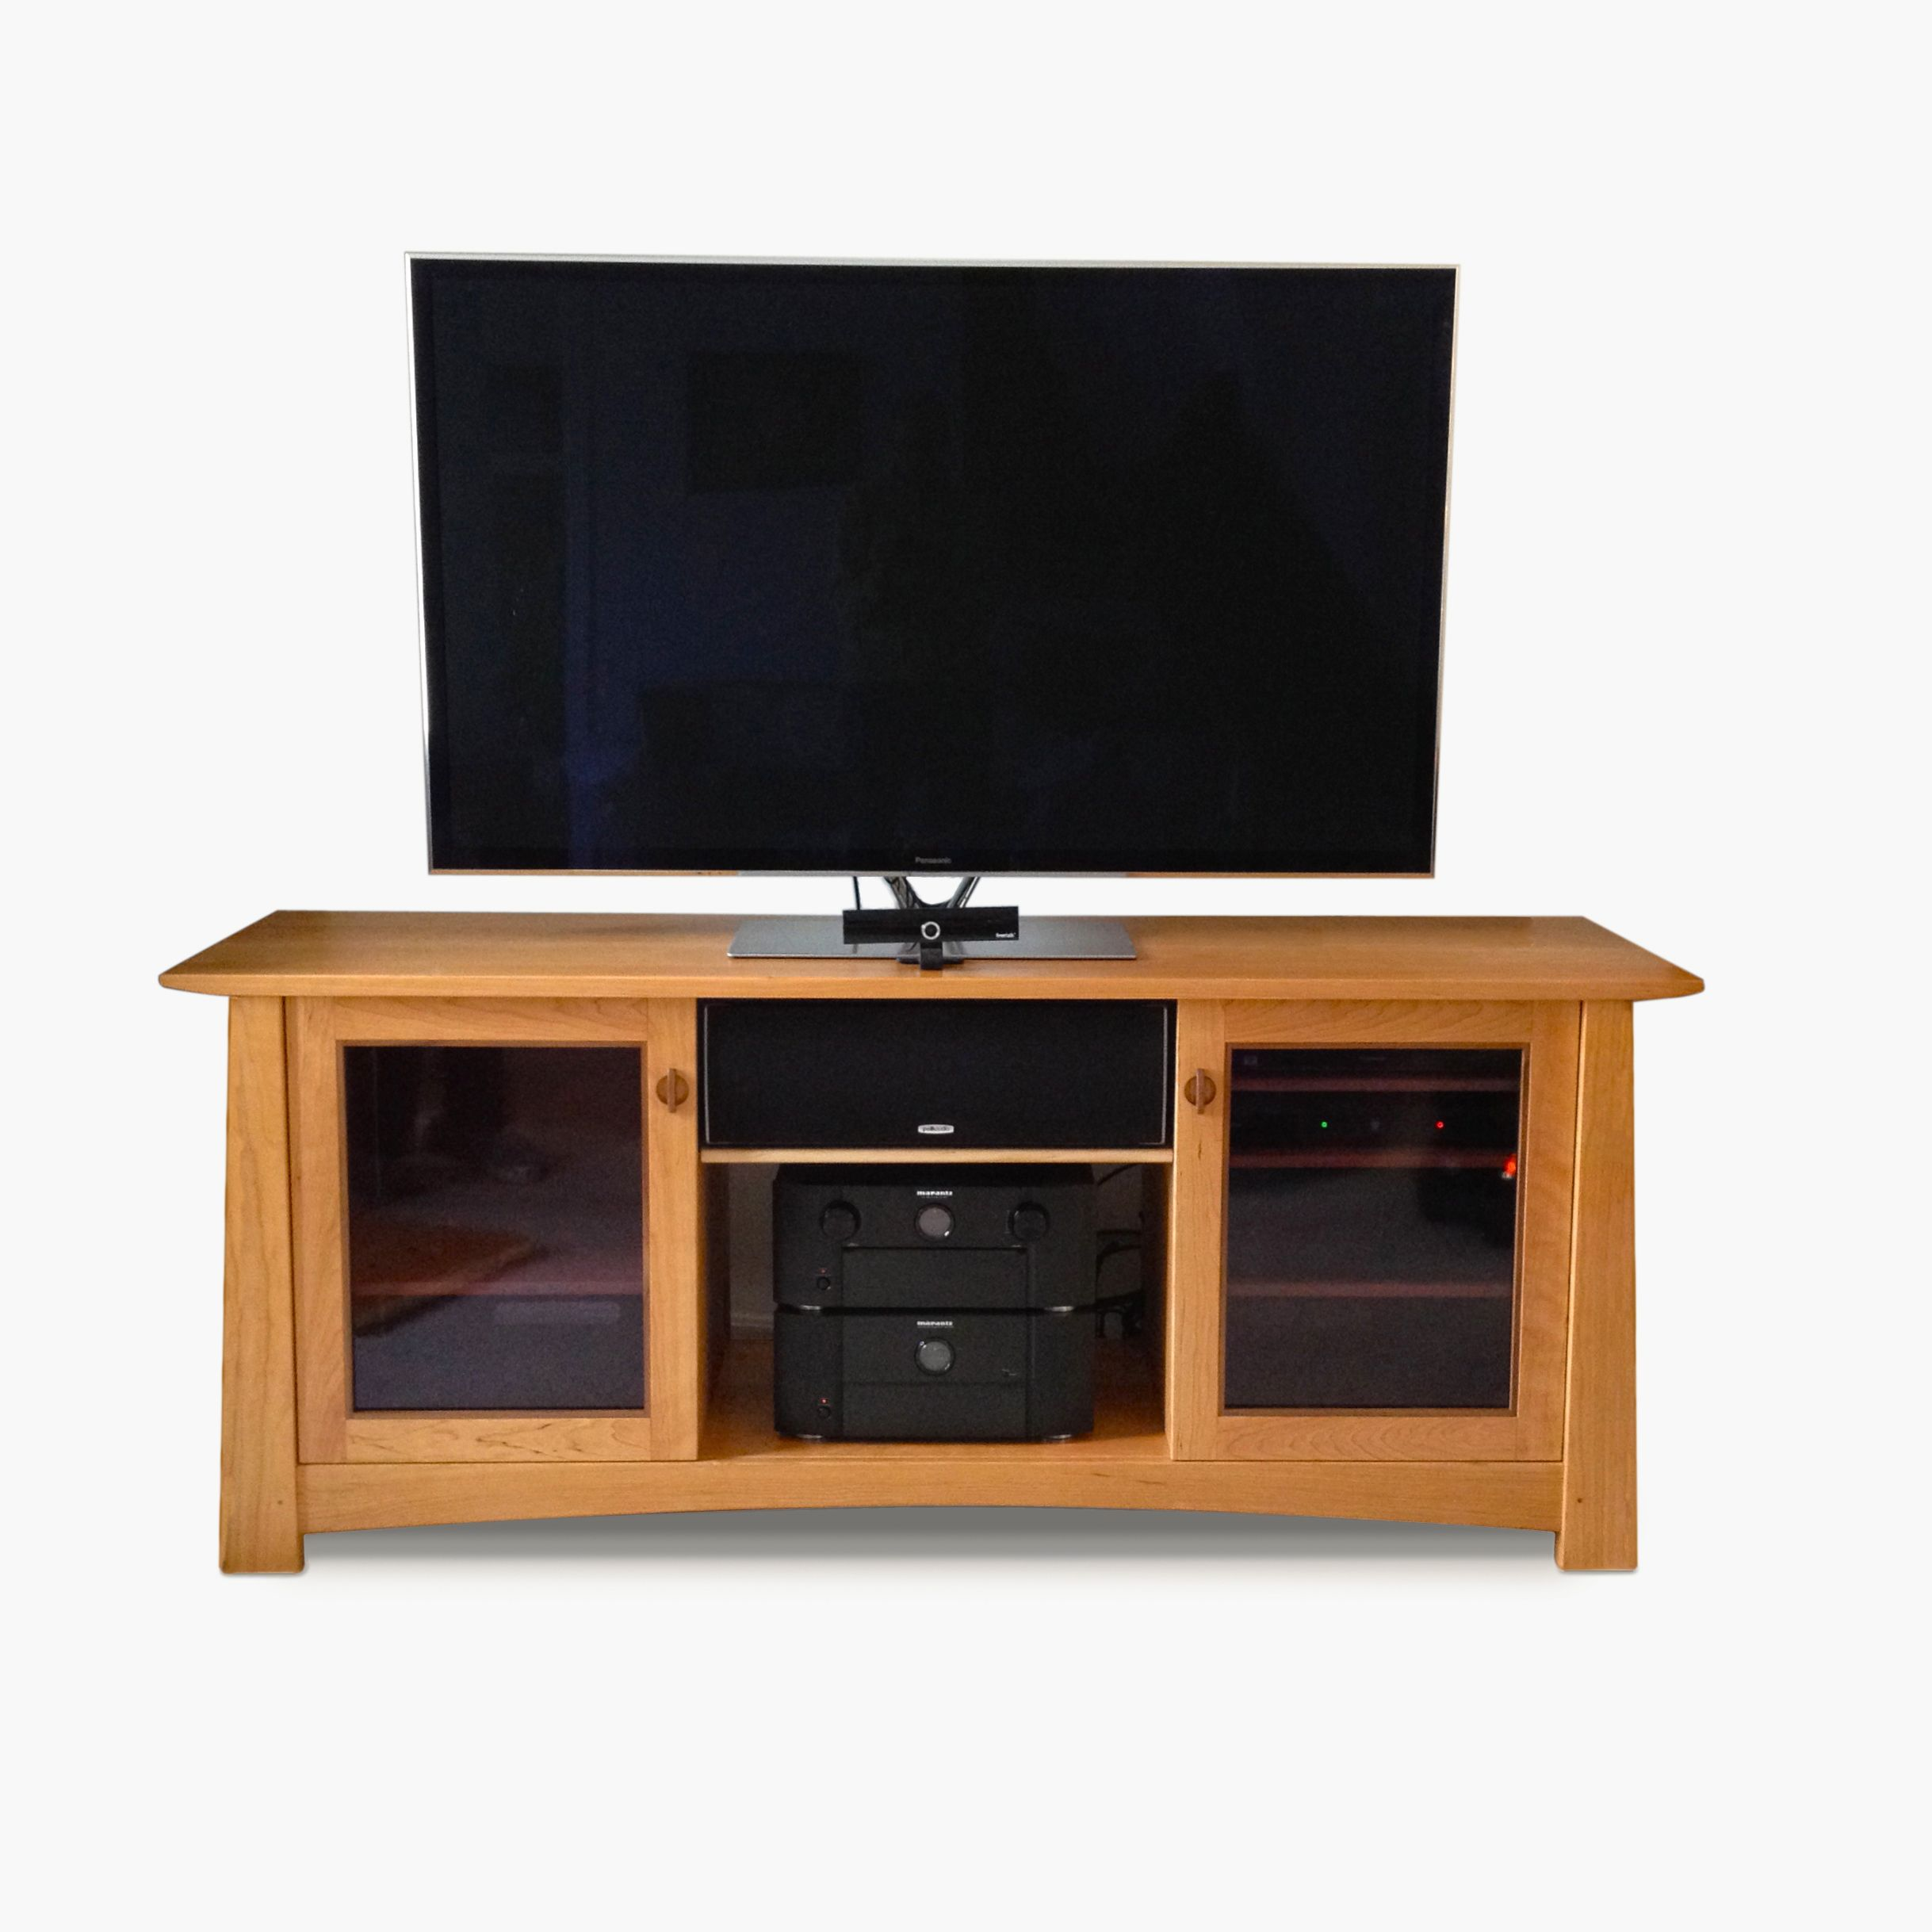 Custom Arts And Crafts Tv Stand Console Purple Moon